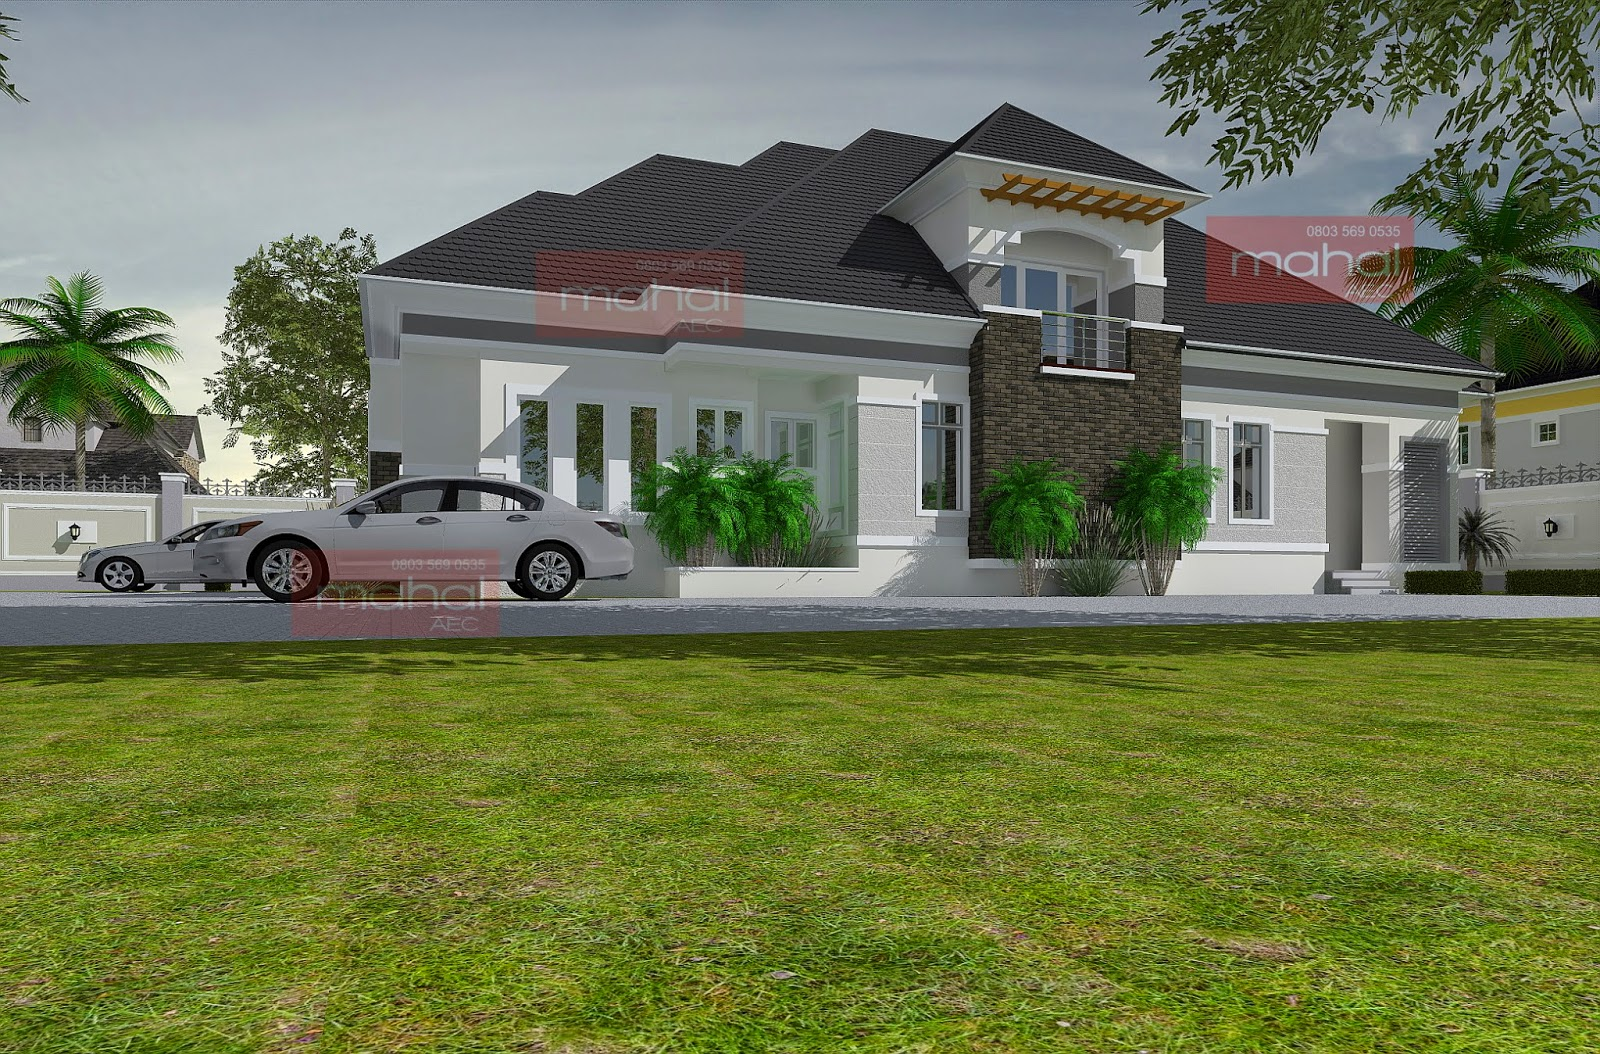 Contemporary nigerian residential architecture for 4 bedroom house designs in nigeria